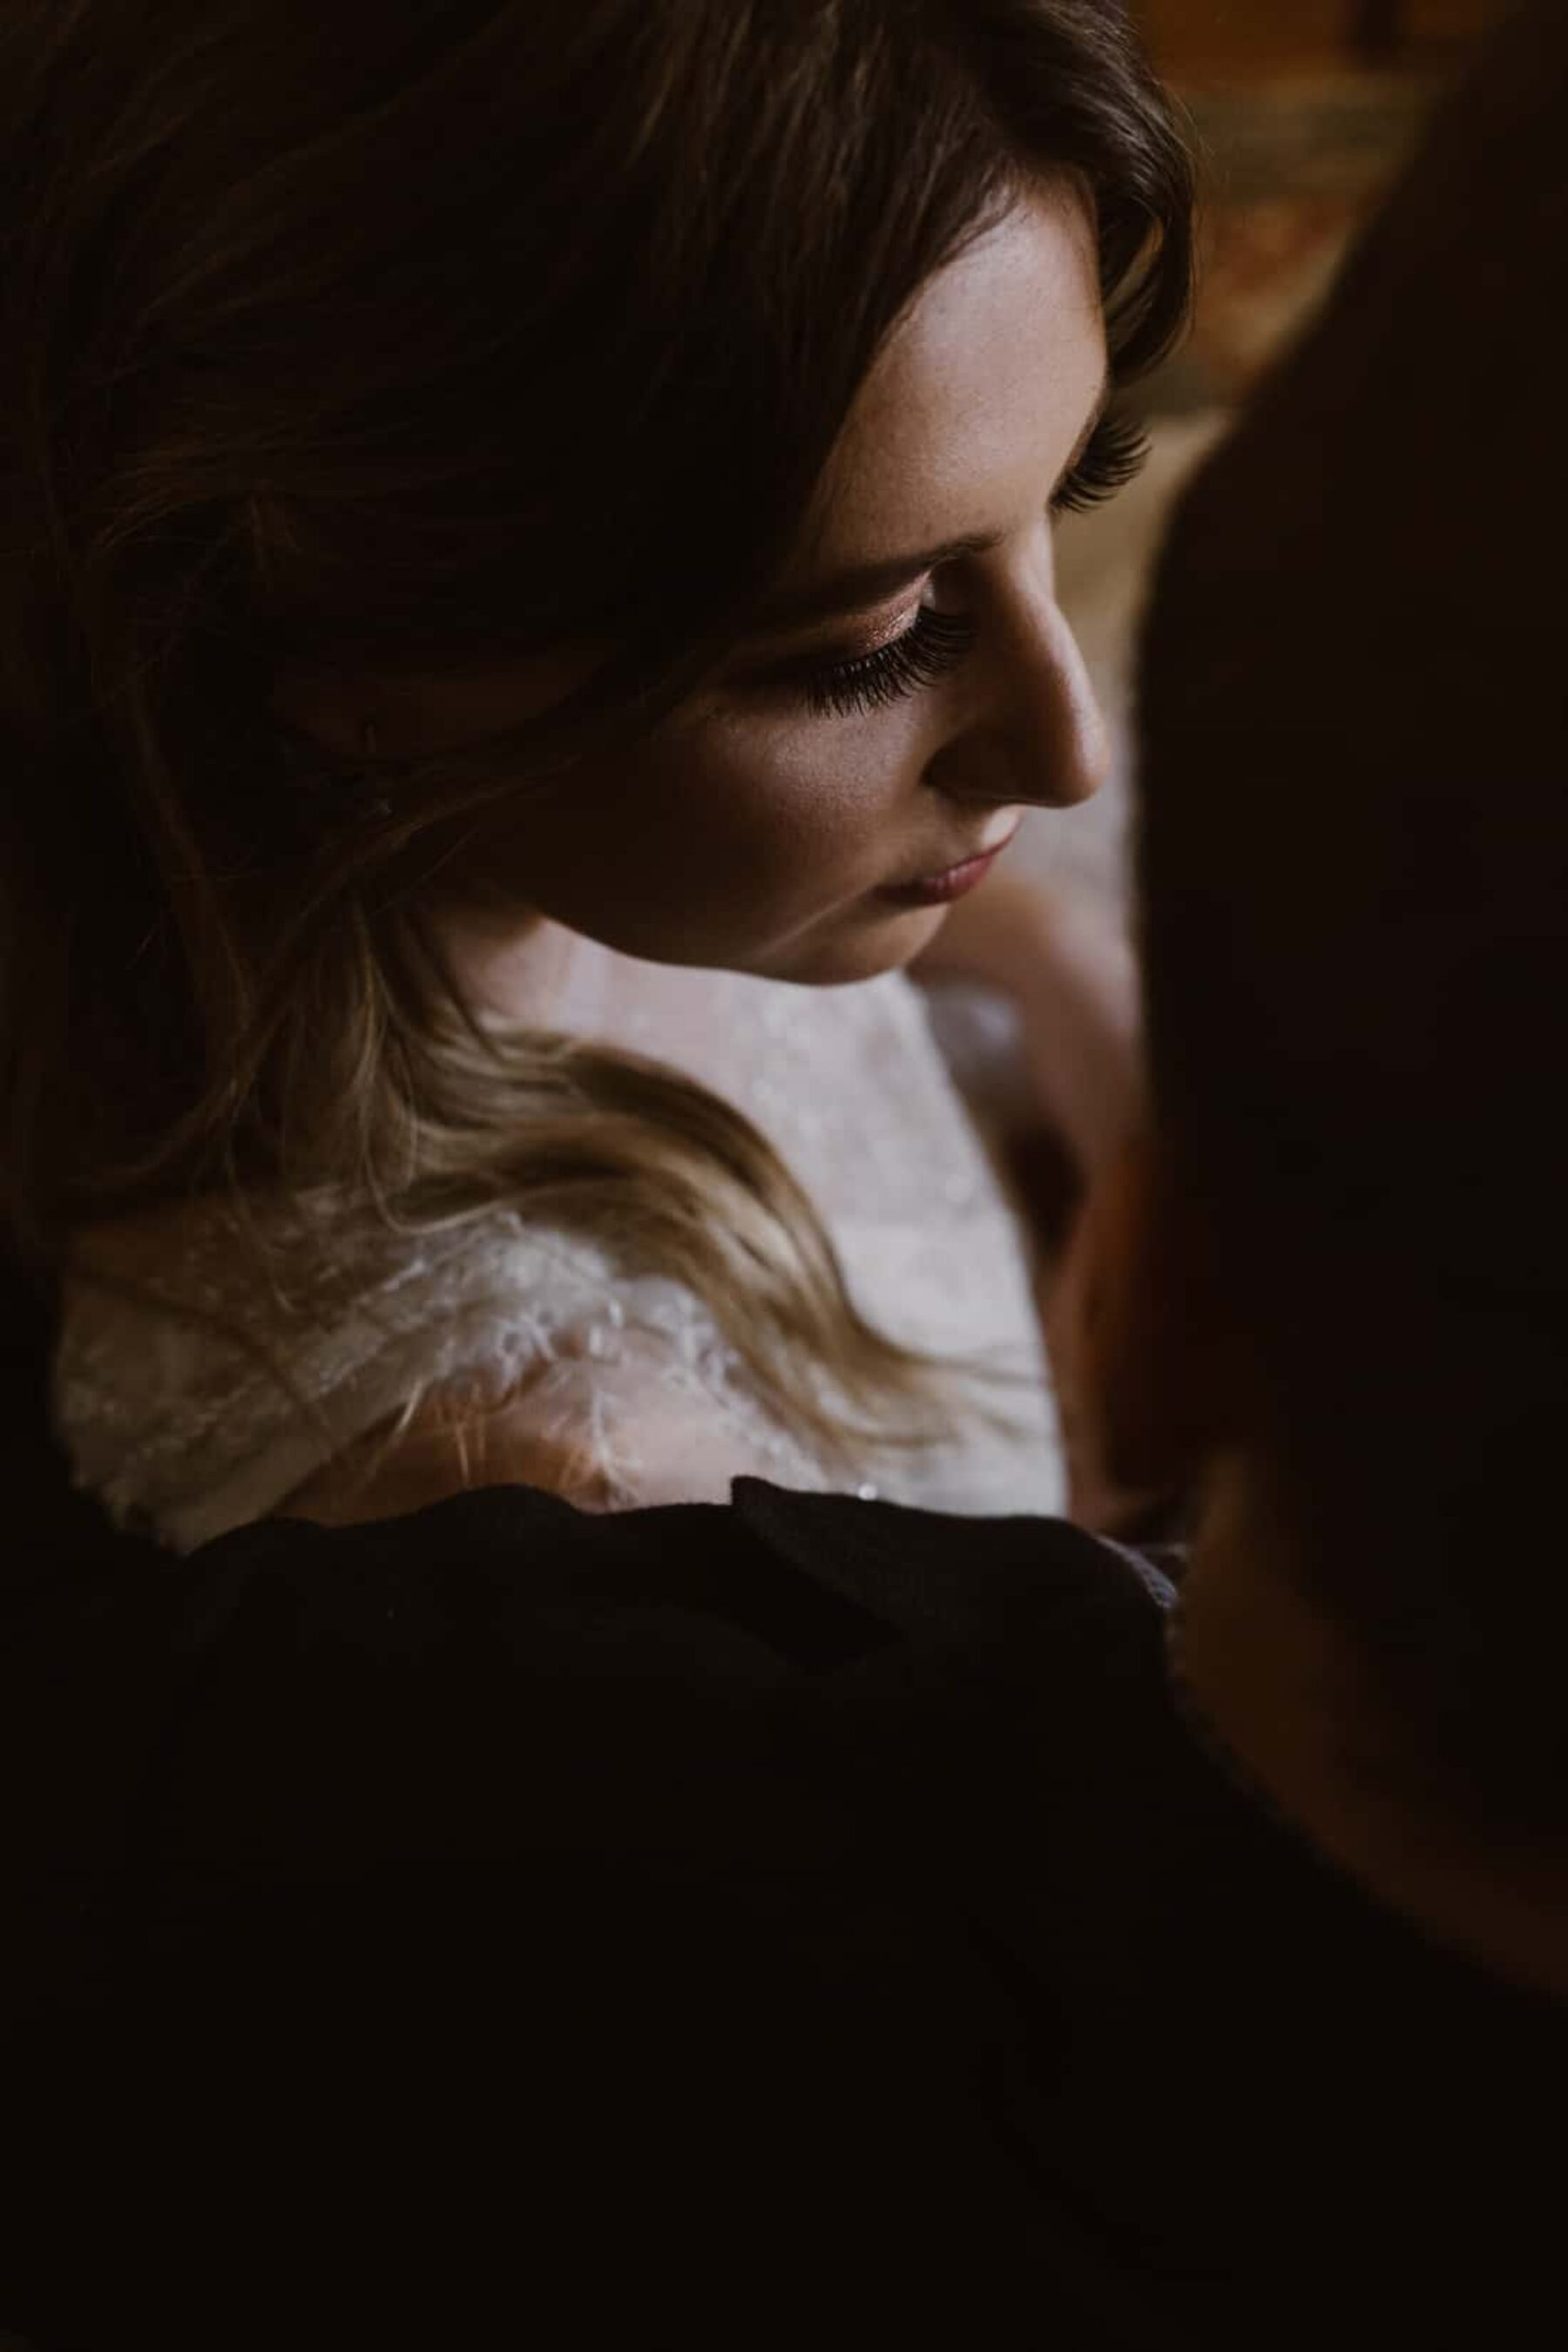 vintage winter wedding inspiration at The Stanley pub in Perth WA